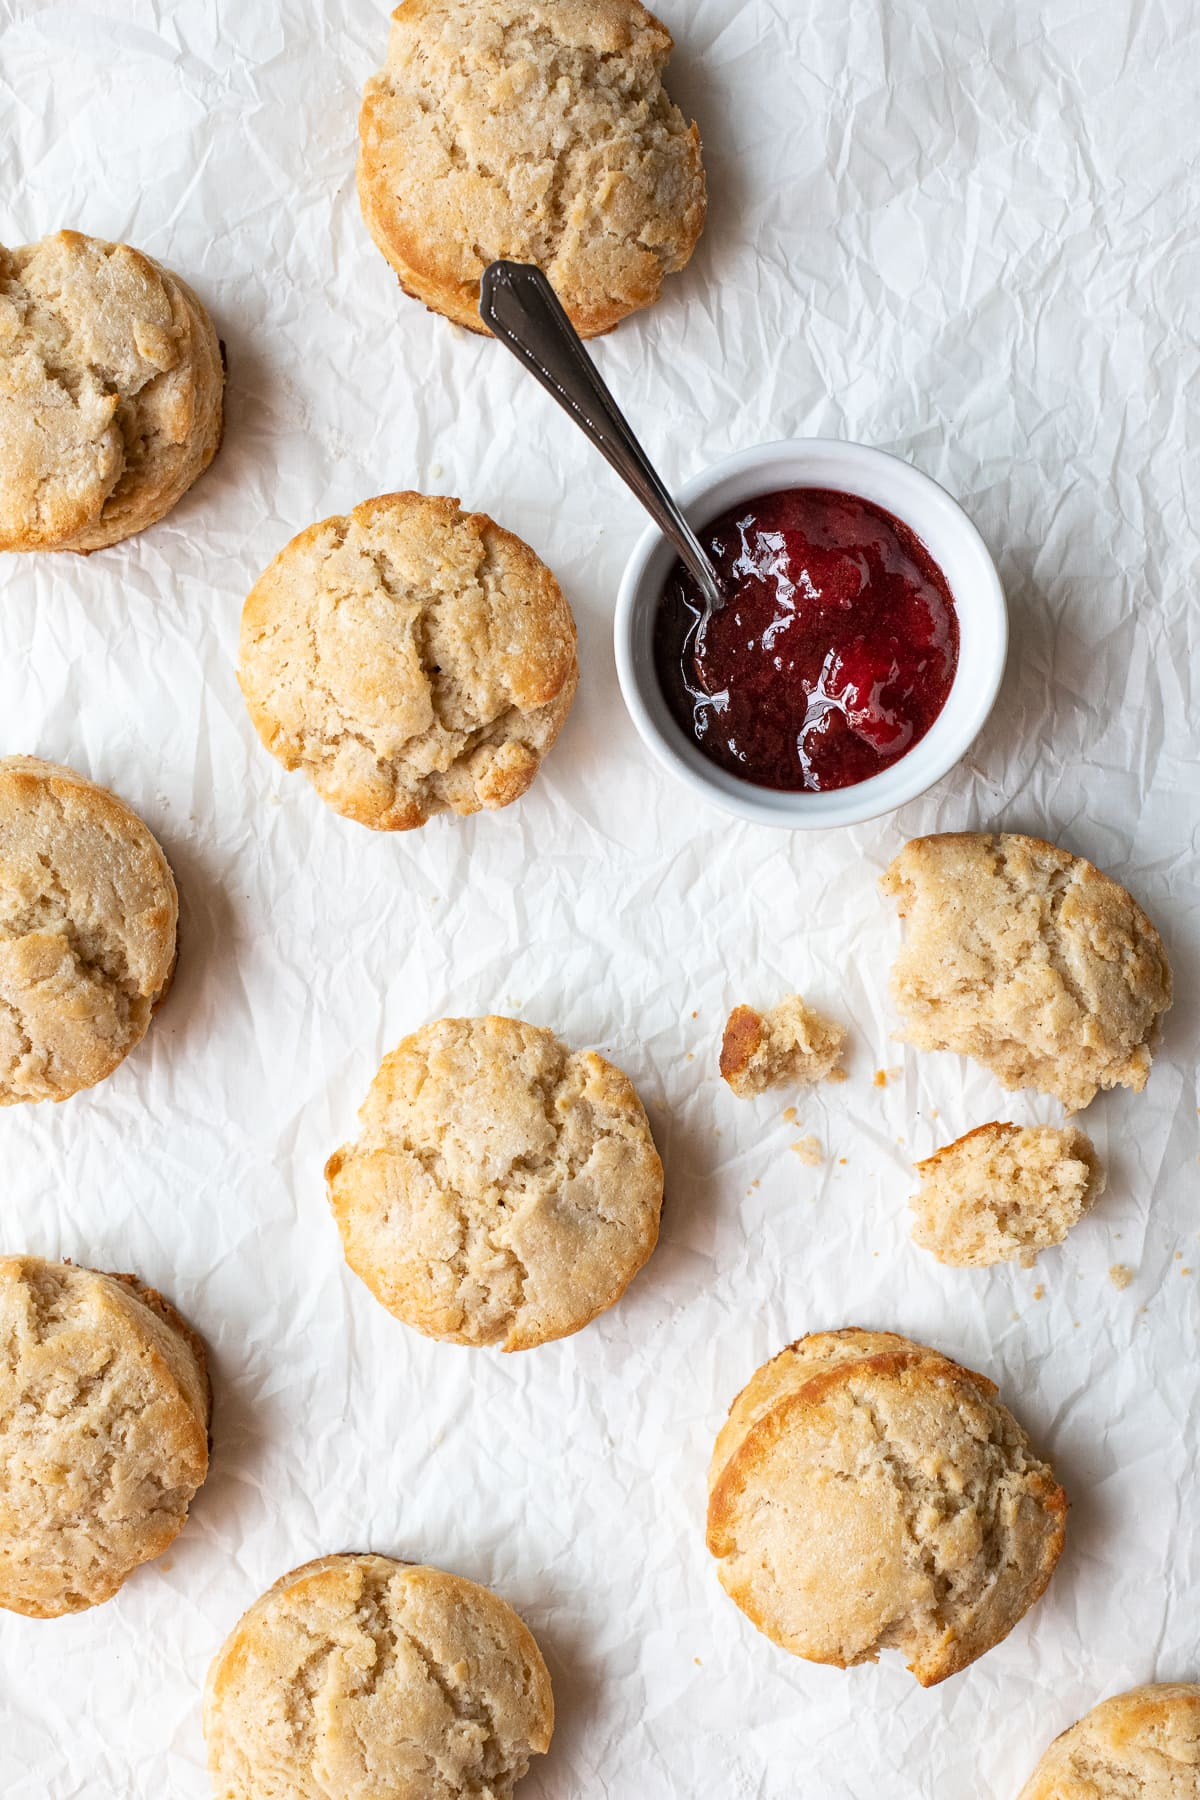 Overhead view of biscuits scattered across a sheet of crumpled parchment paper, alongside a small ramekin full of jam.